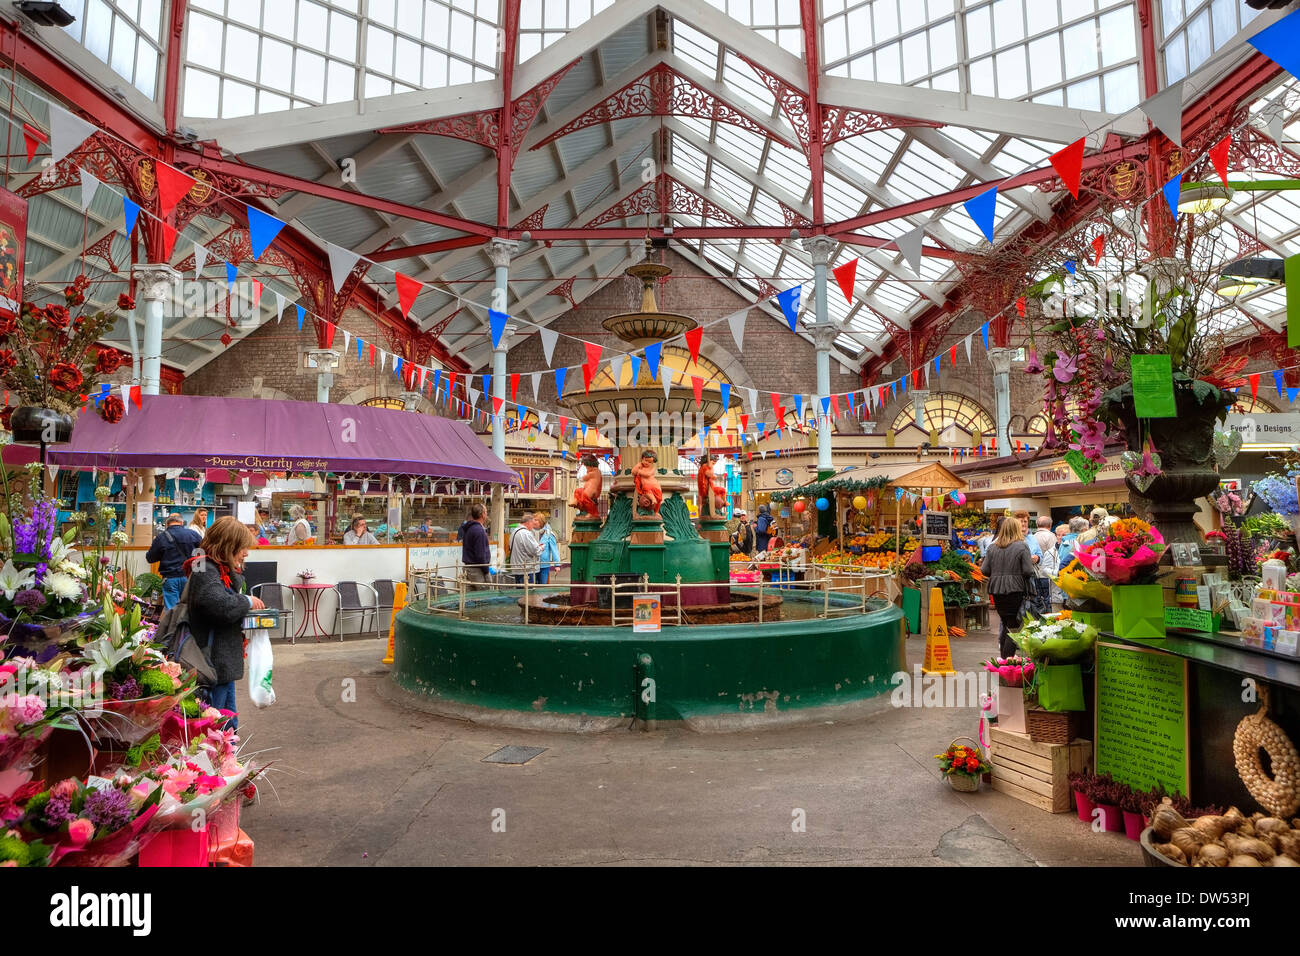 Central Market St Helier - Stock Image